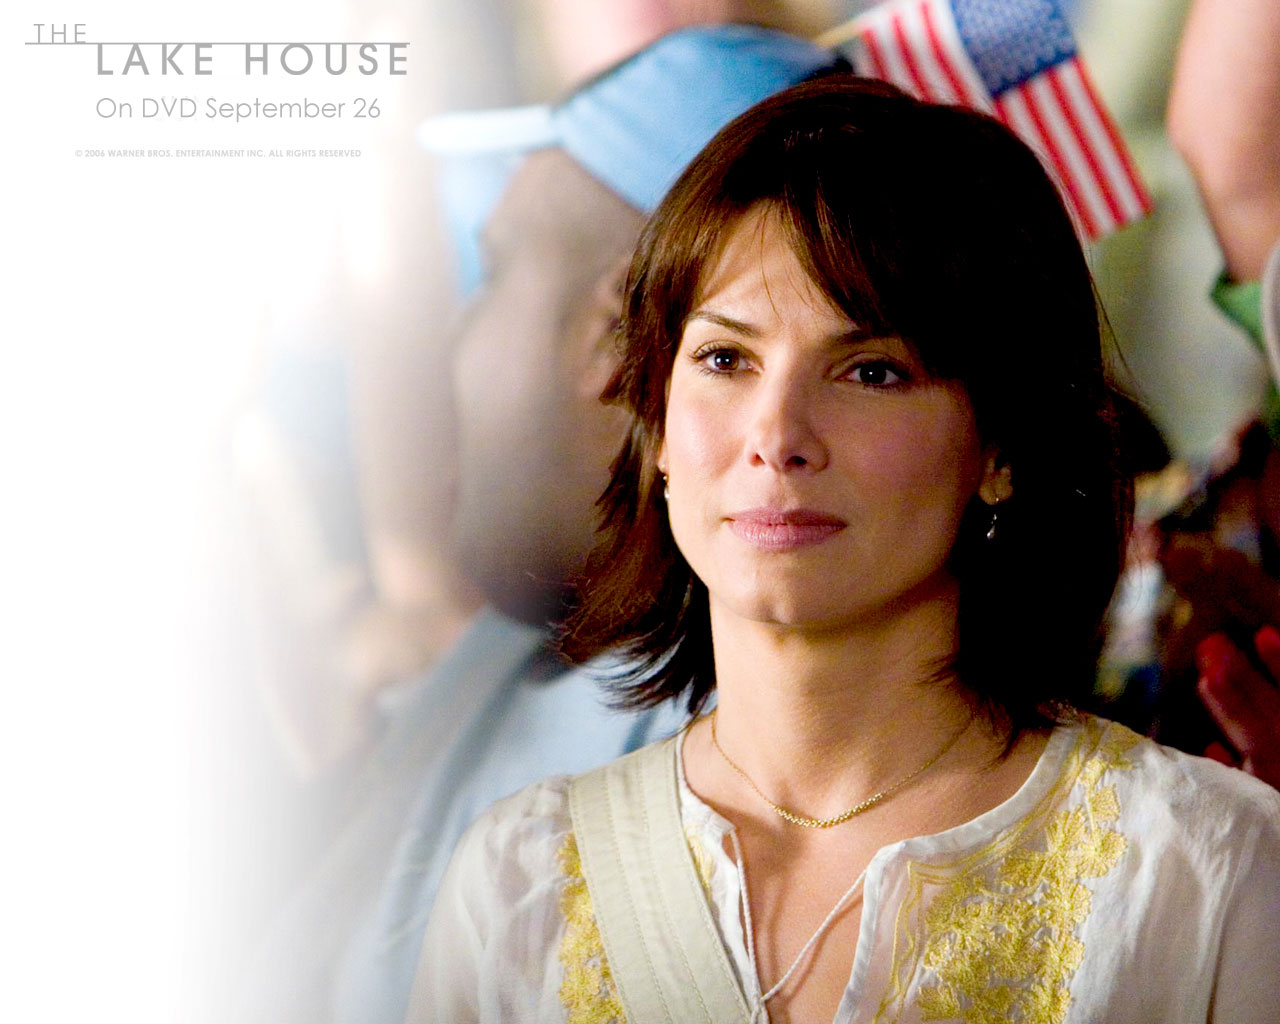 The Lake House - Sandra Bullock Wallpaper (87347) - Fanpop